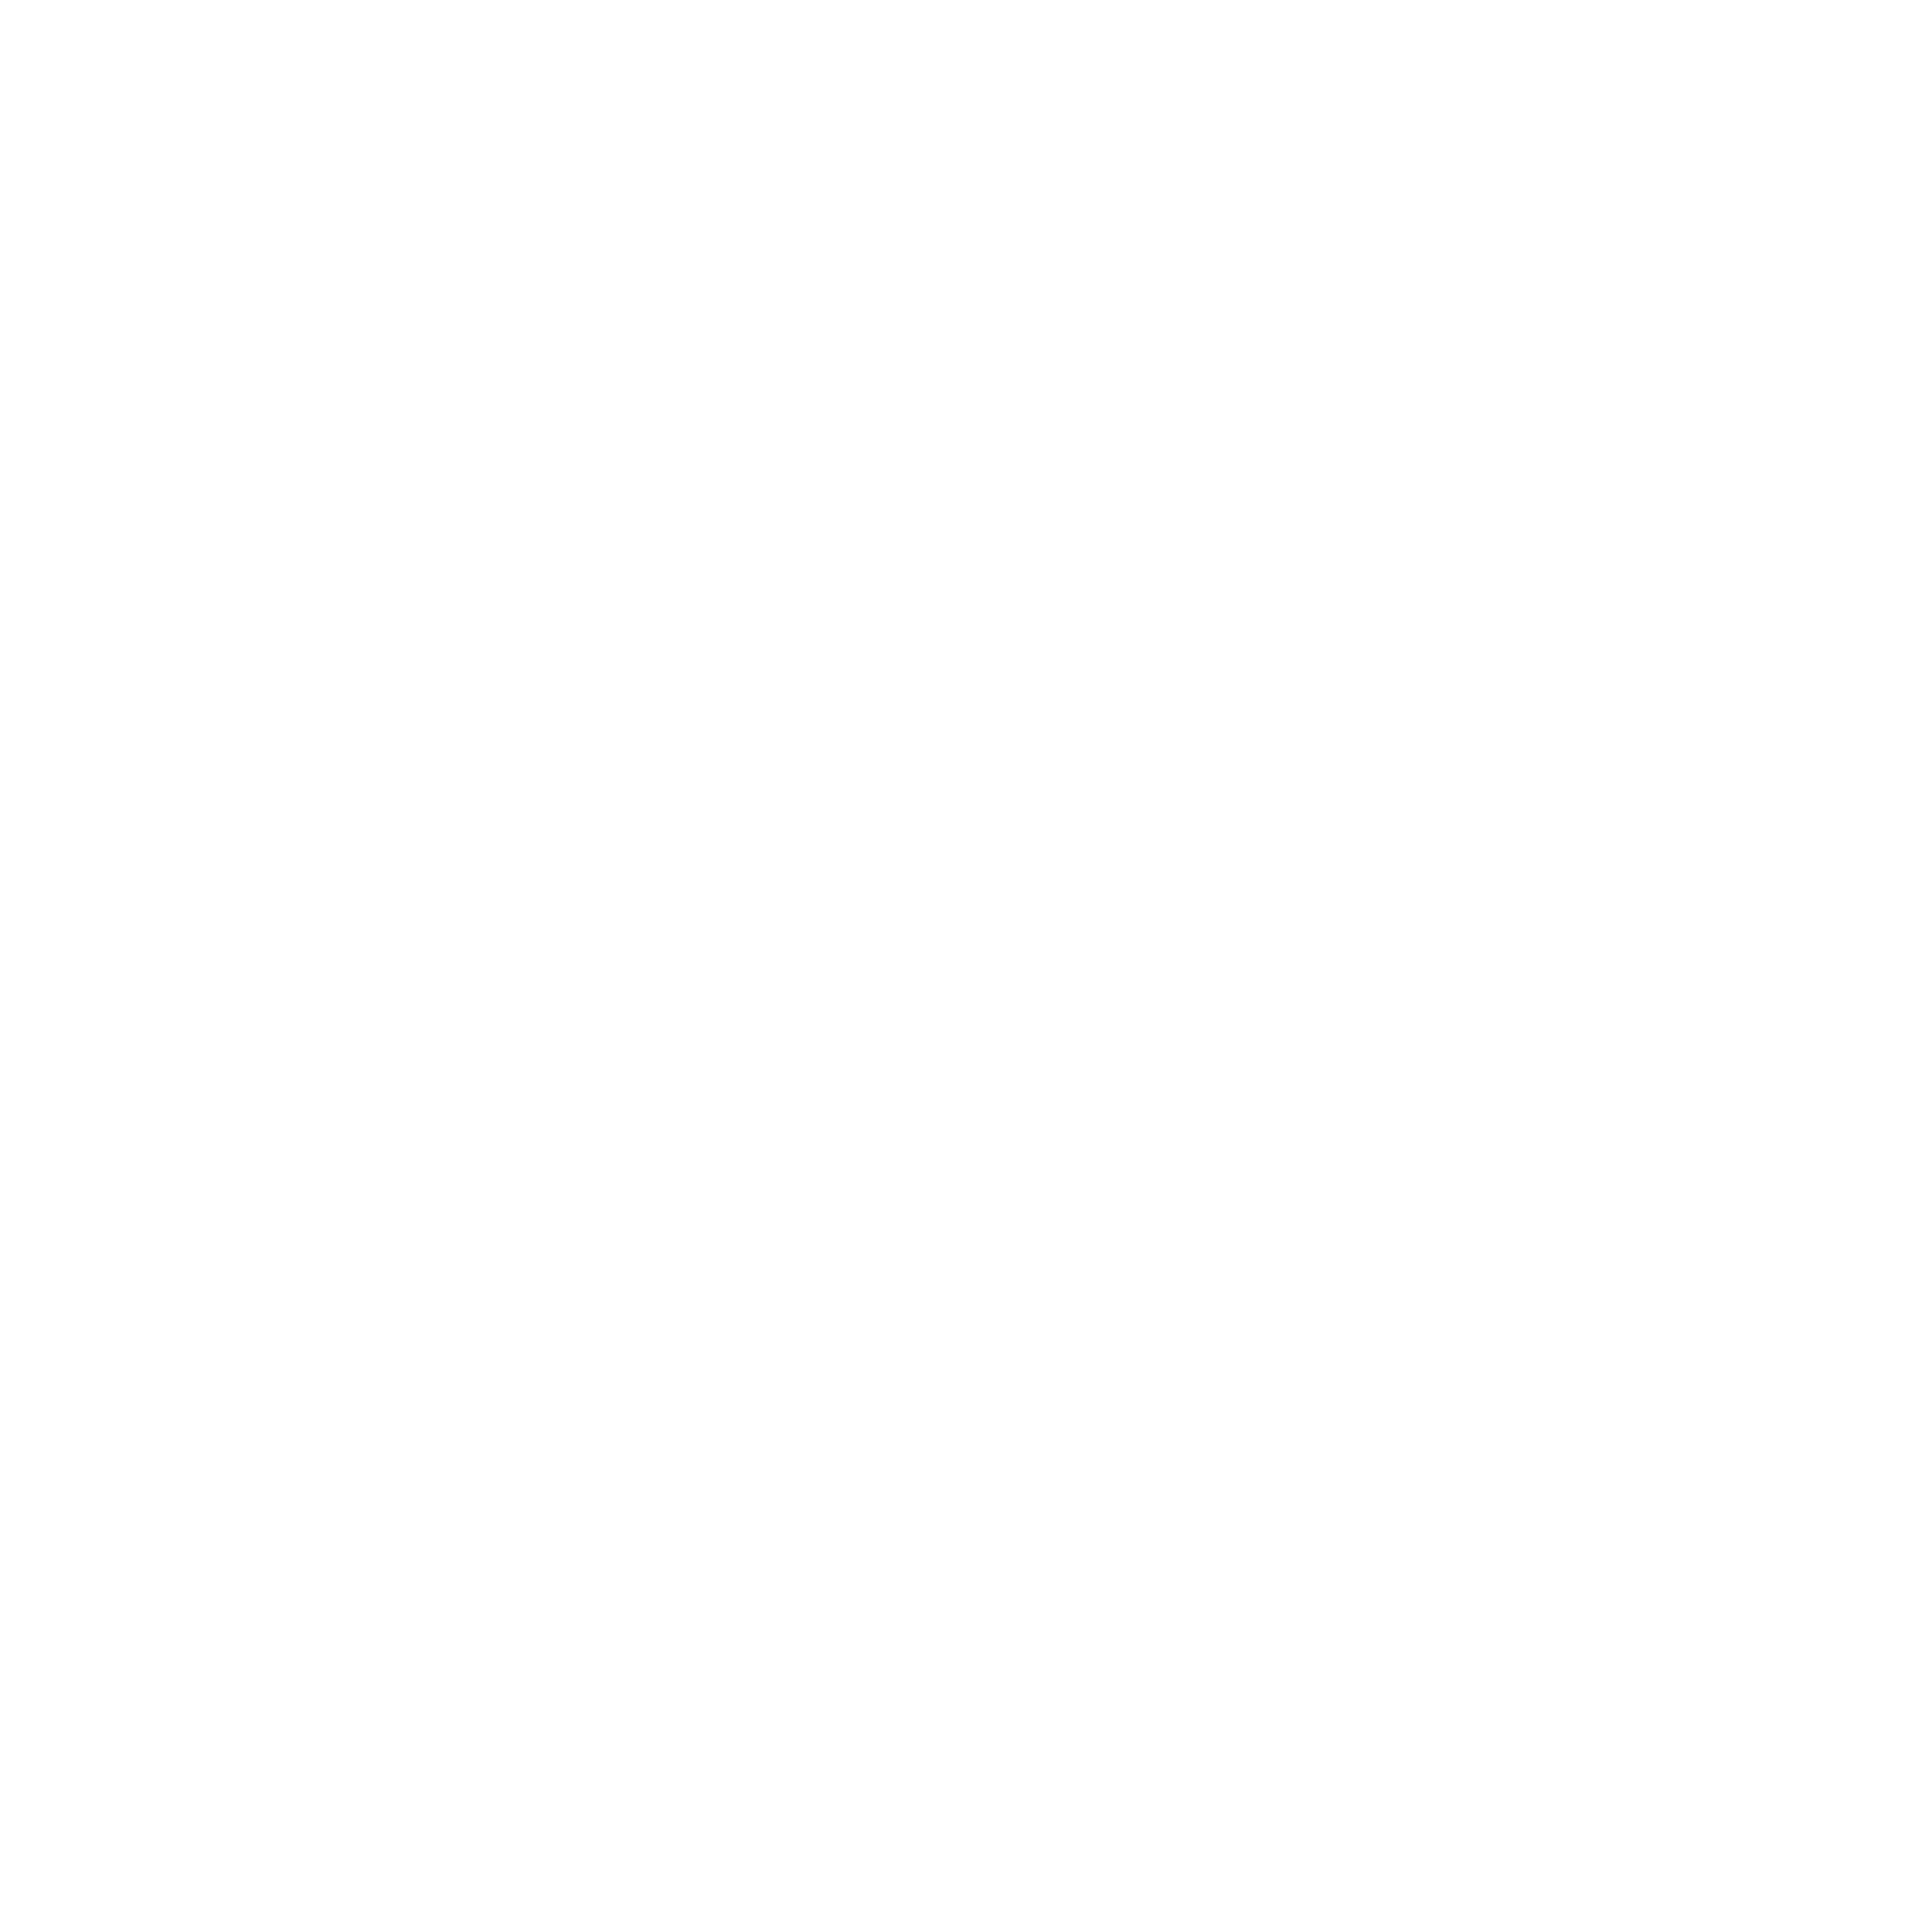 Kale and Exhale